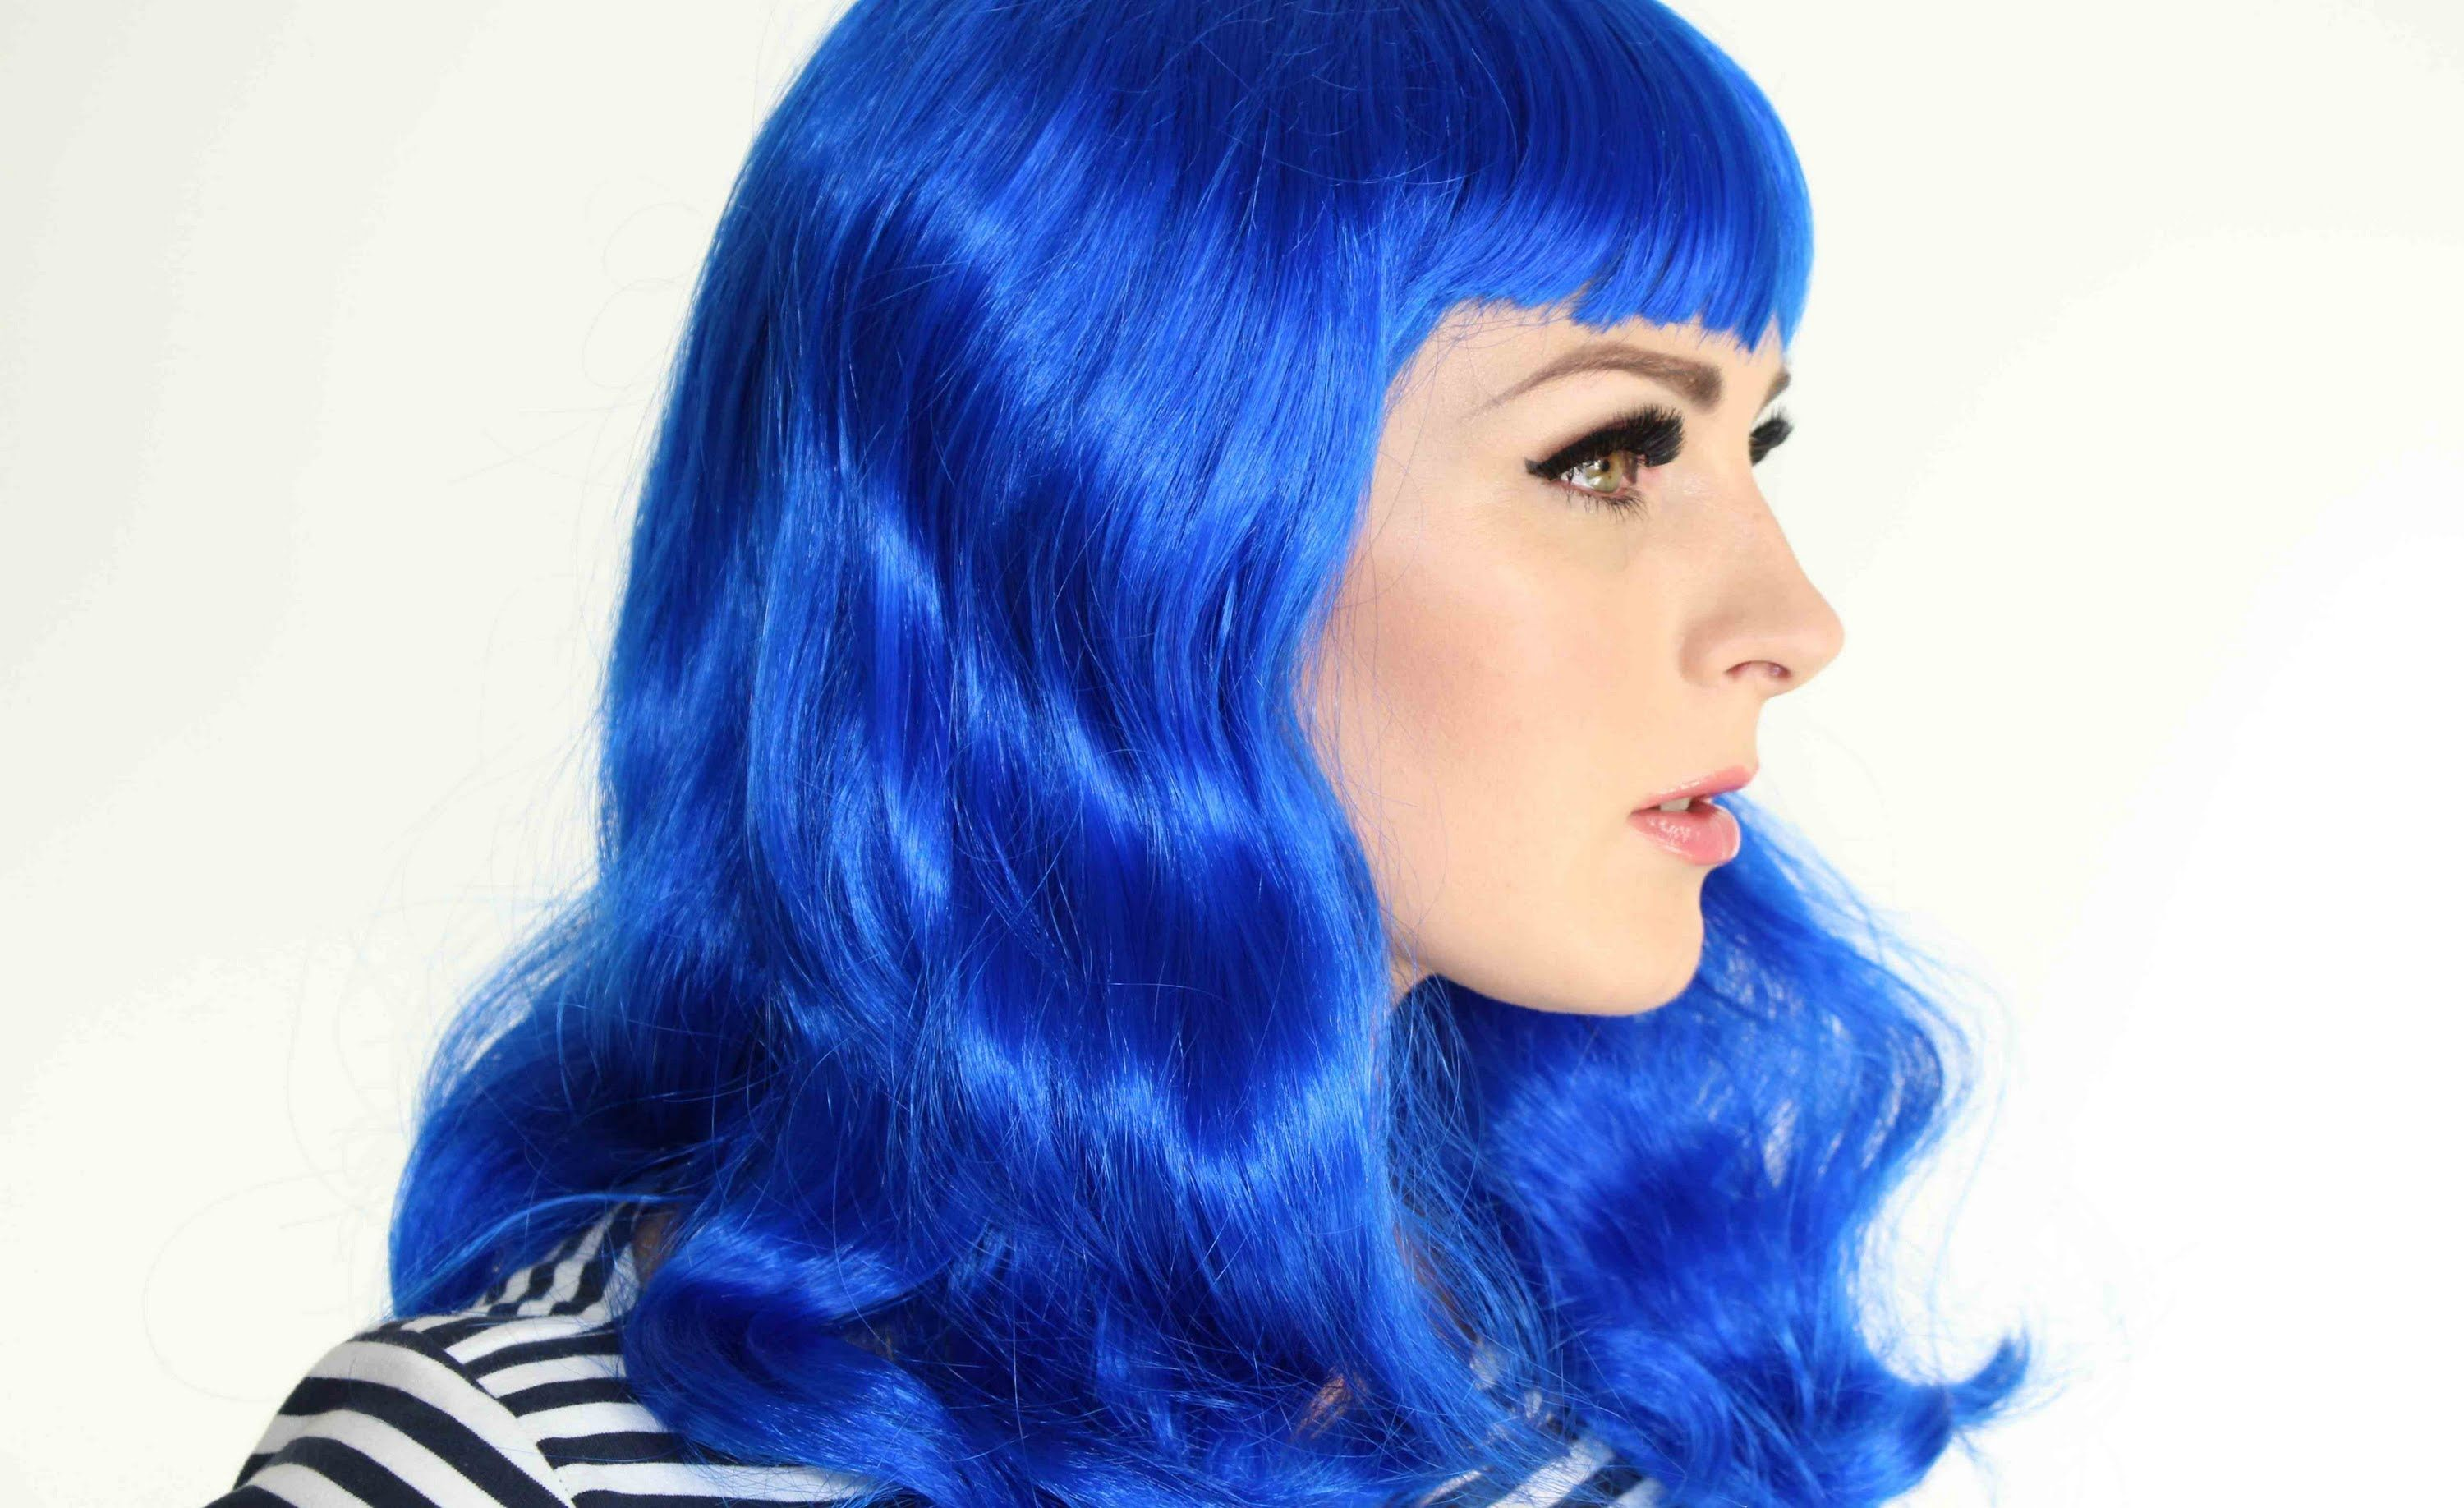 Katy Perry Make Up Tutorial Makeup, Halloween makeup